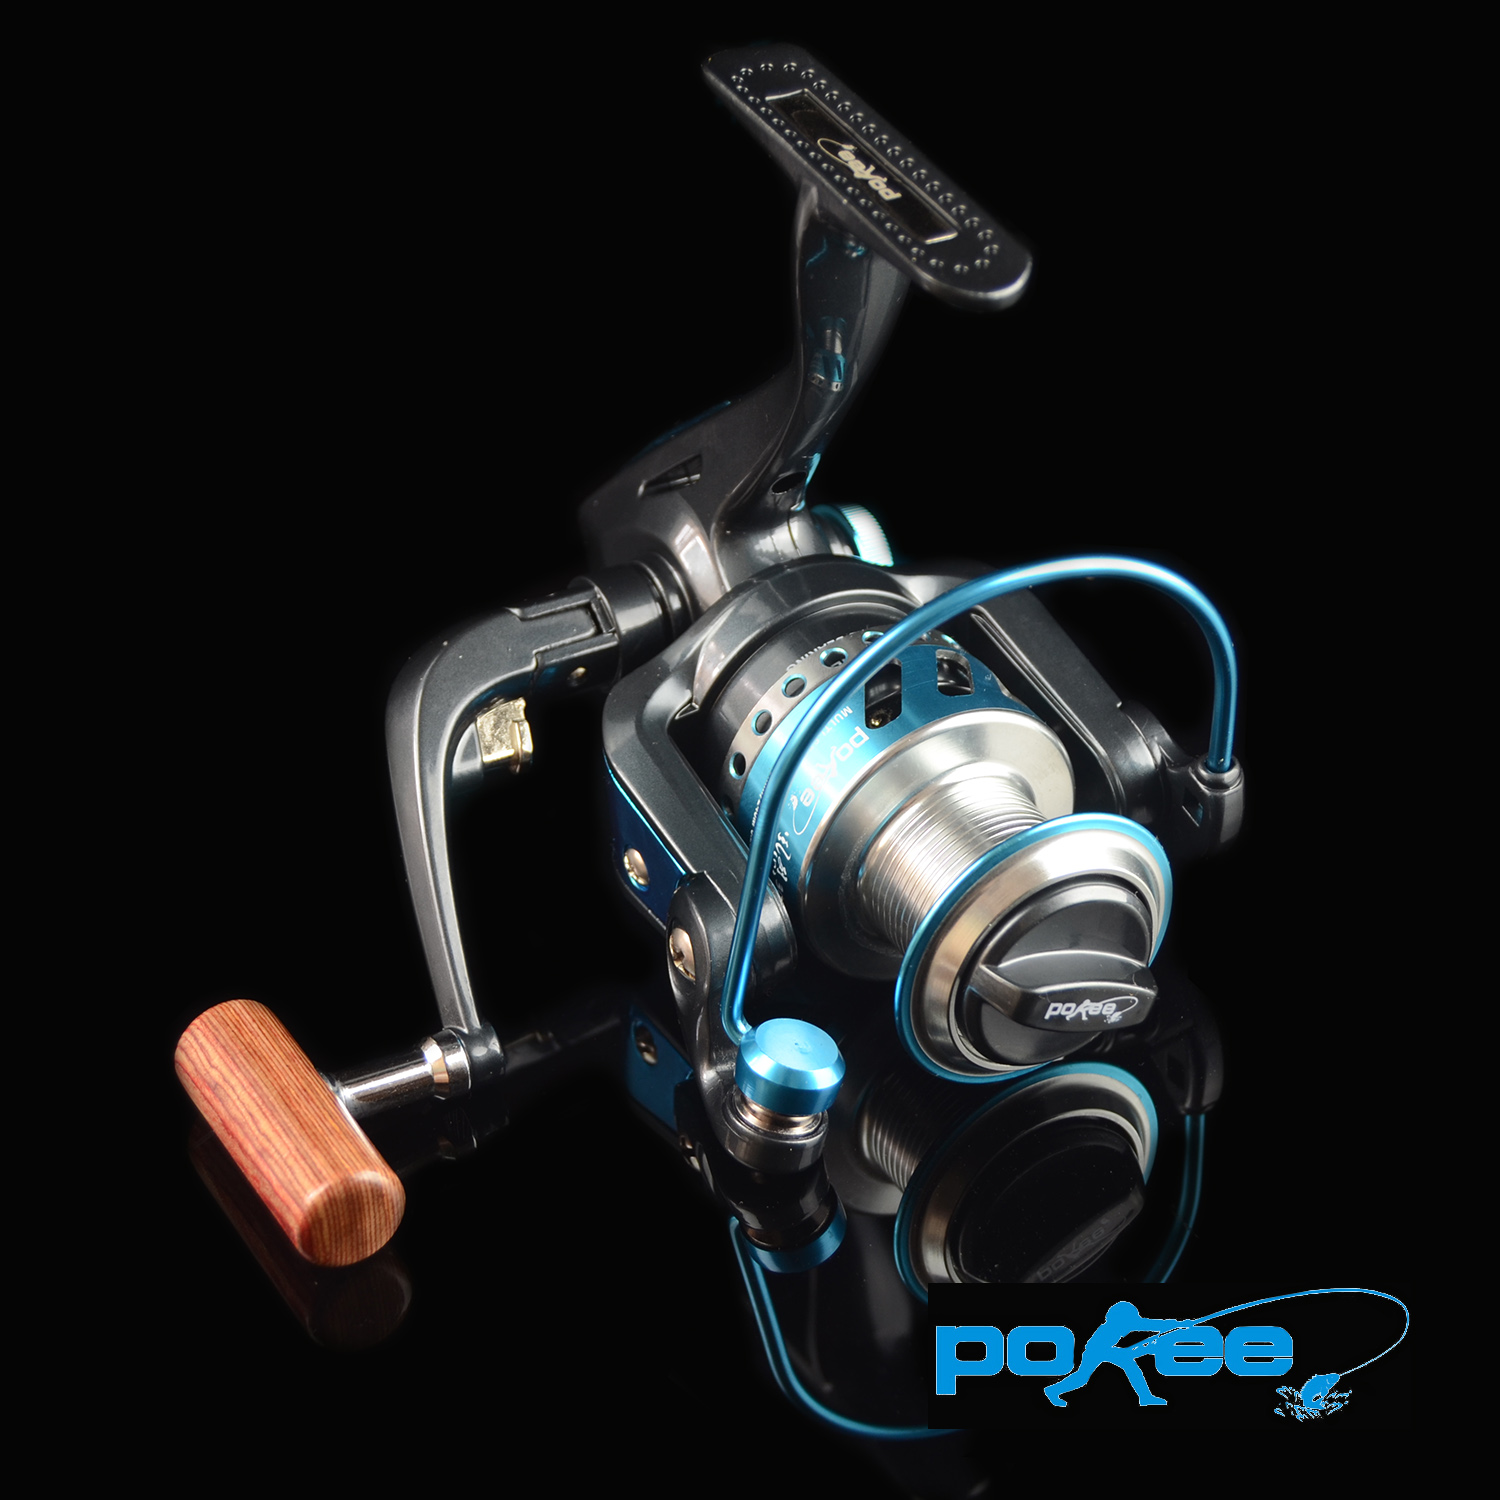 Fishing reel spinning for rock fishing pokee Genuine Pacific FL5000 open faced gear ration5.0:1spool line coil 0.3mm/200m(China (Mainland))